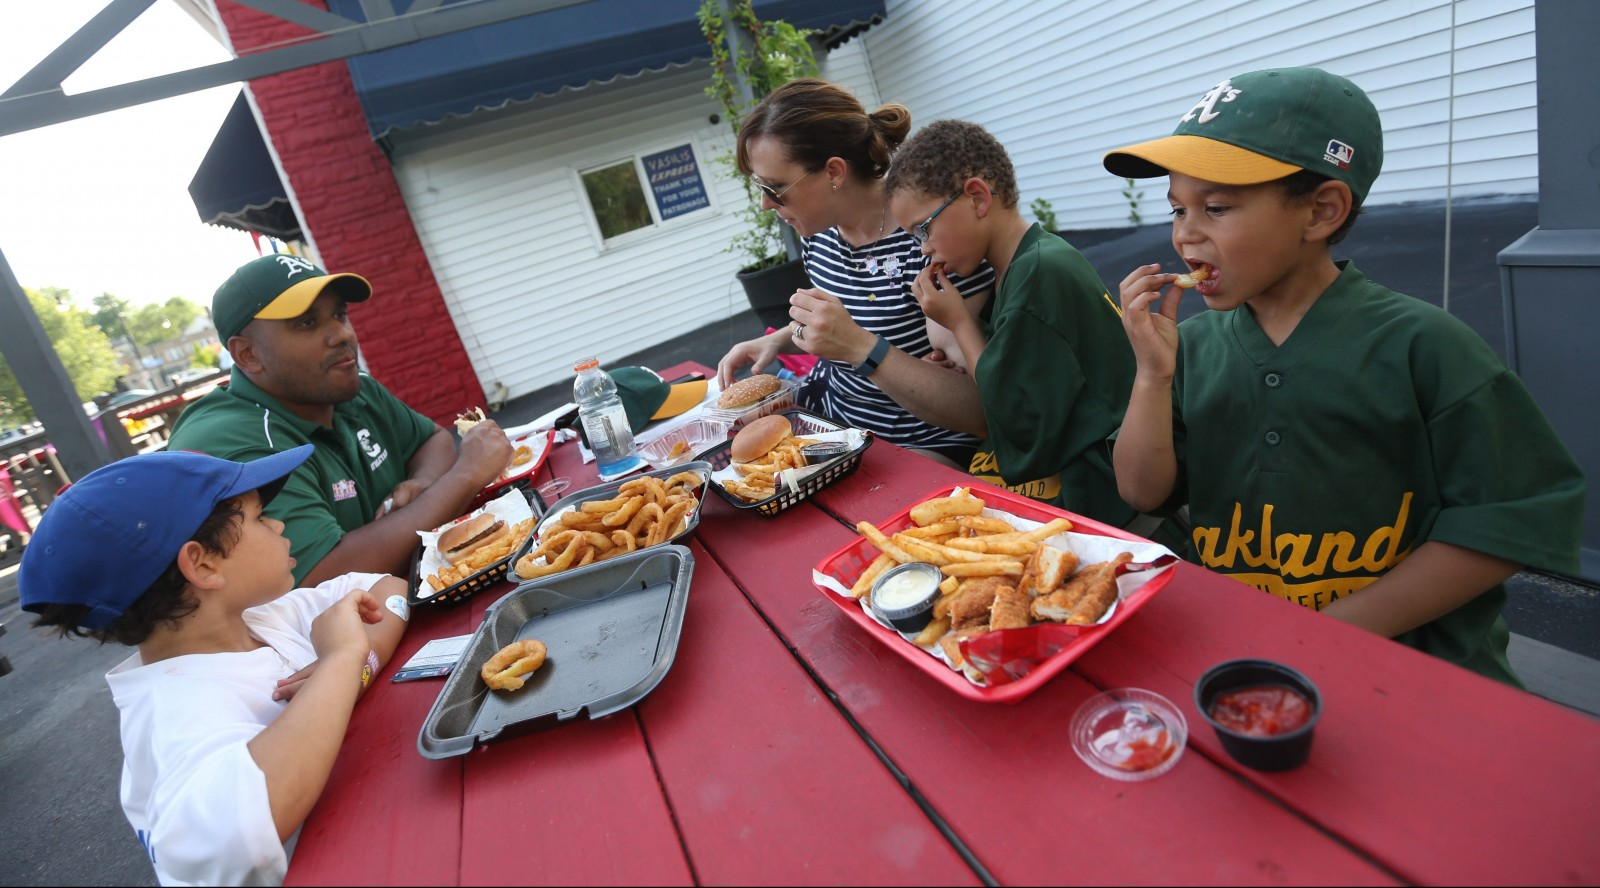 The Gomez Family enjoys dinner after their baseball game at Mighty Moe's on Hertel Avenue. From left are Eli, 4, Omar, Megan and twins Nate and Gabe, 6.